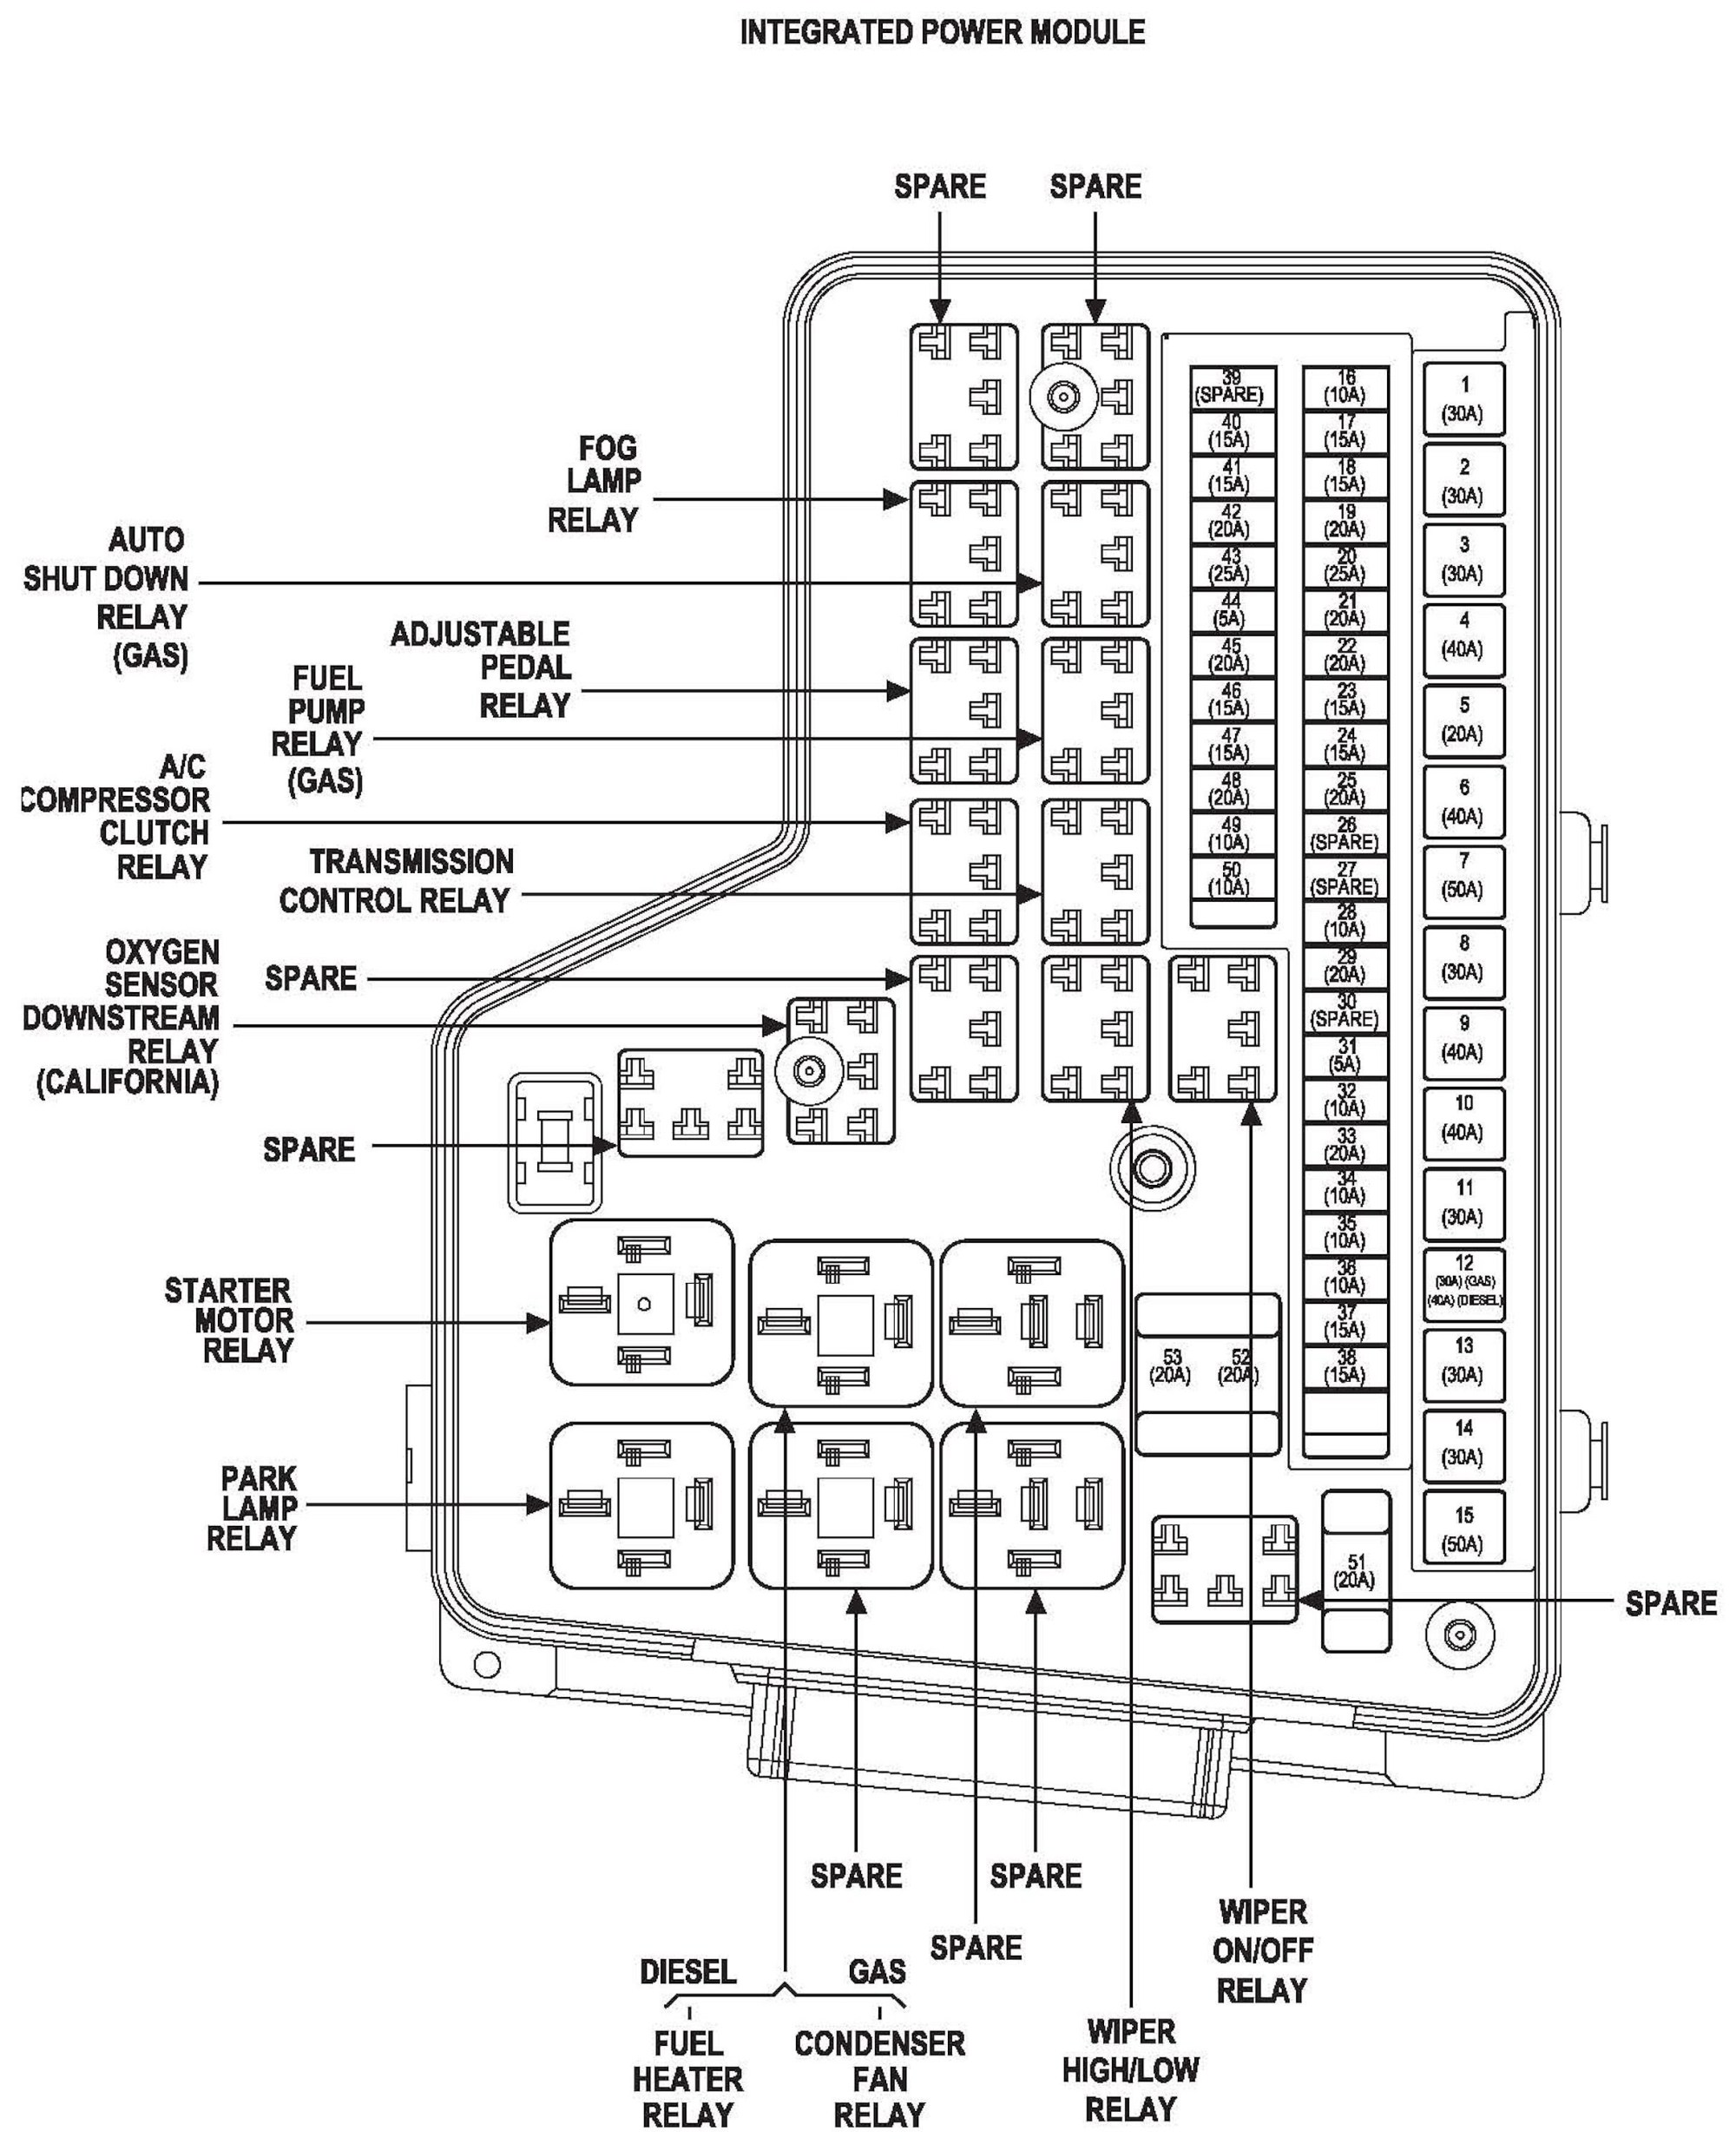 hight resolution of fuse box 2004 dodge ram 1500 wiring diagram for you 2005 dodge caravan fuse diagram 2003 dodge 1500 fuse box